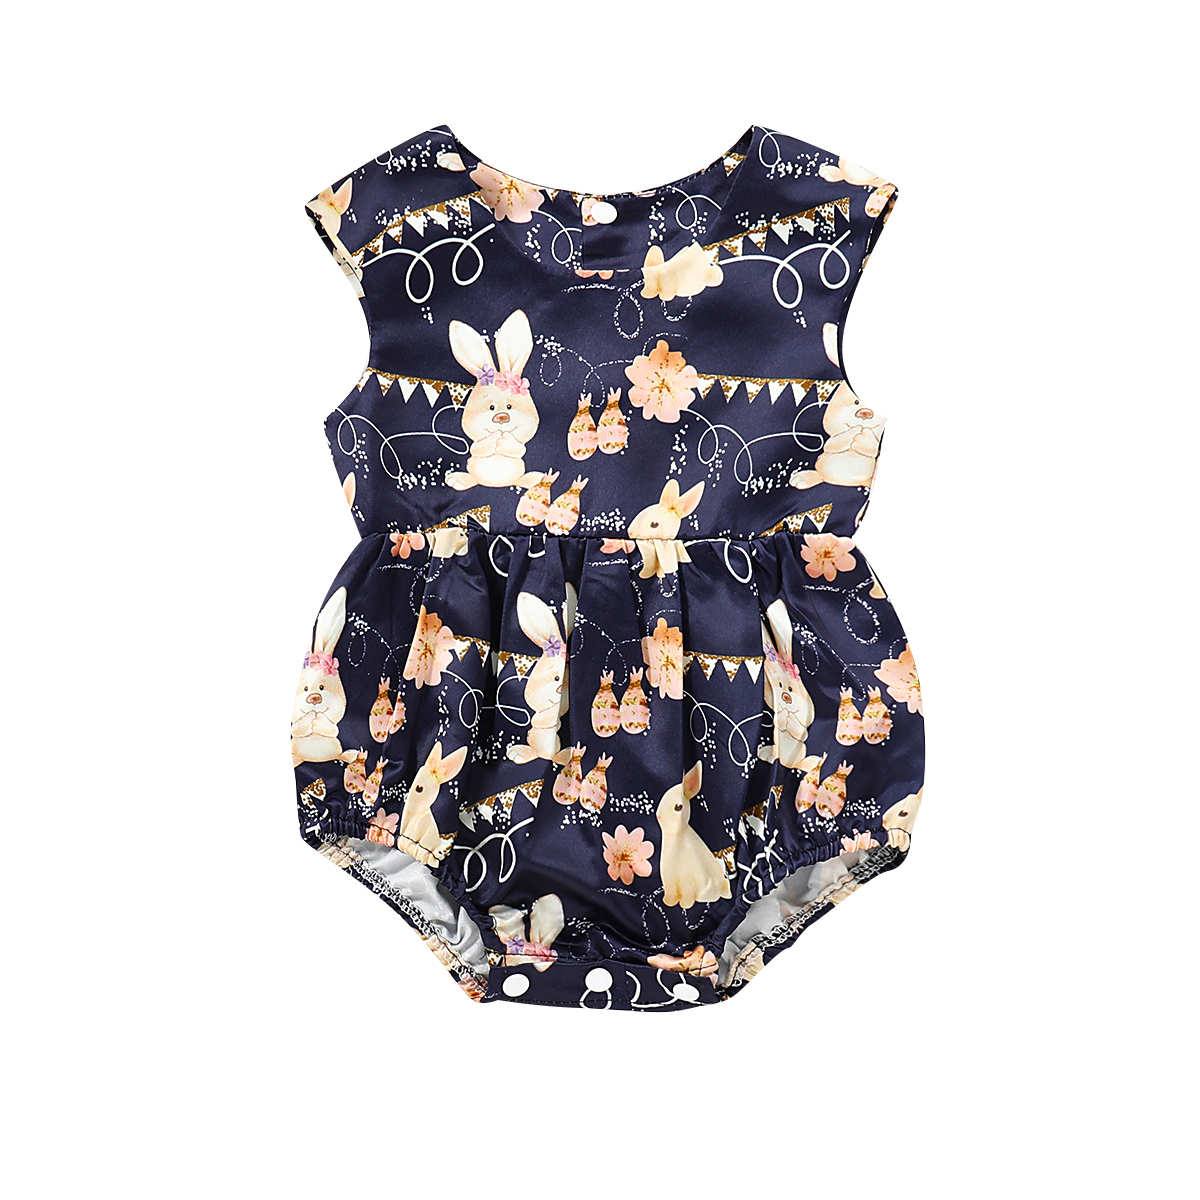 US Infant Toddler Baby Girls Boys Bunny Romper Jumpsuit Playsuit Outfits Clothes